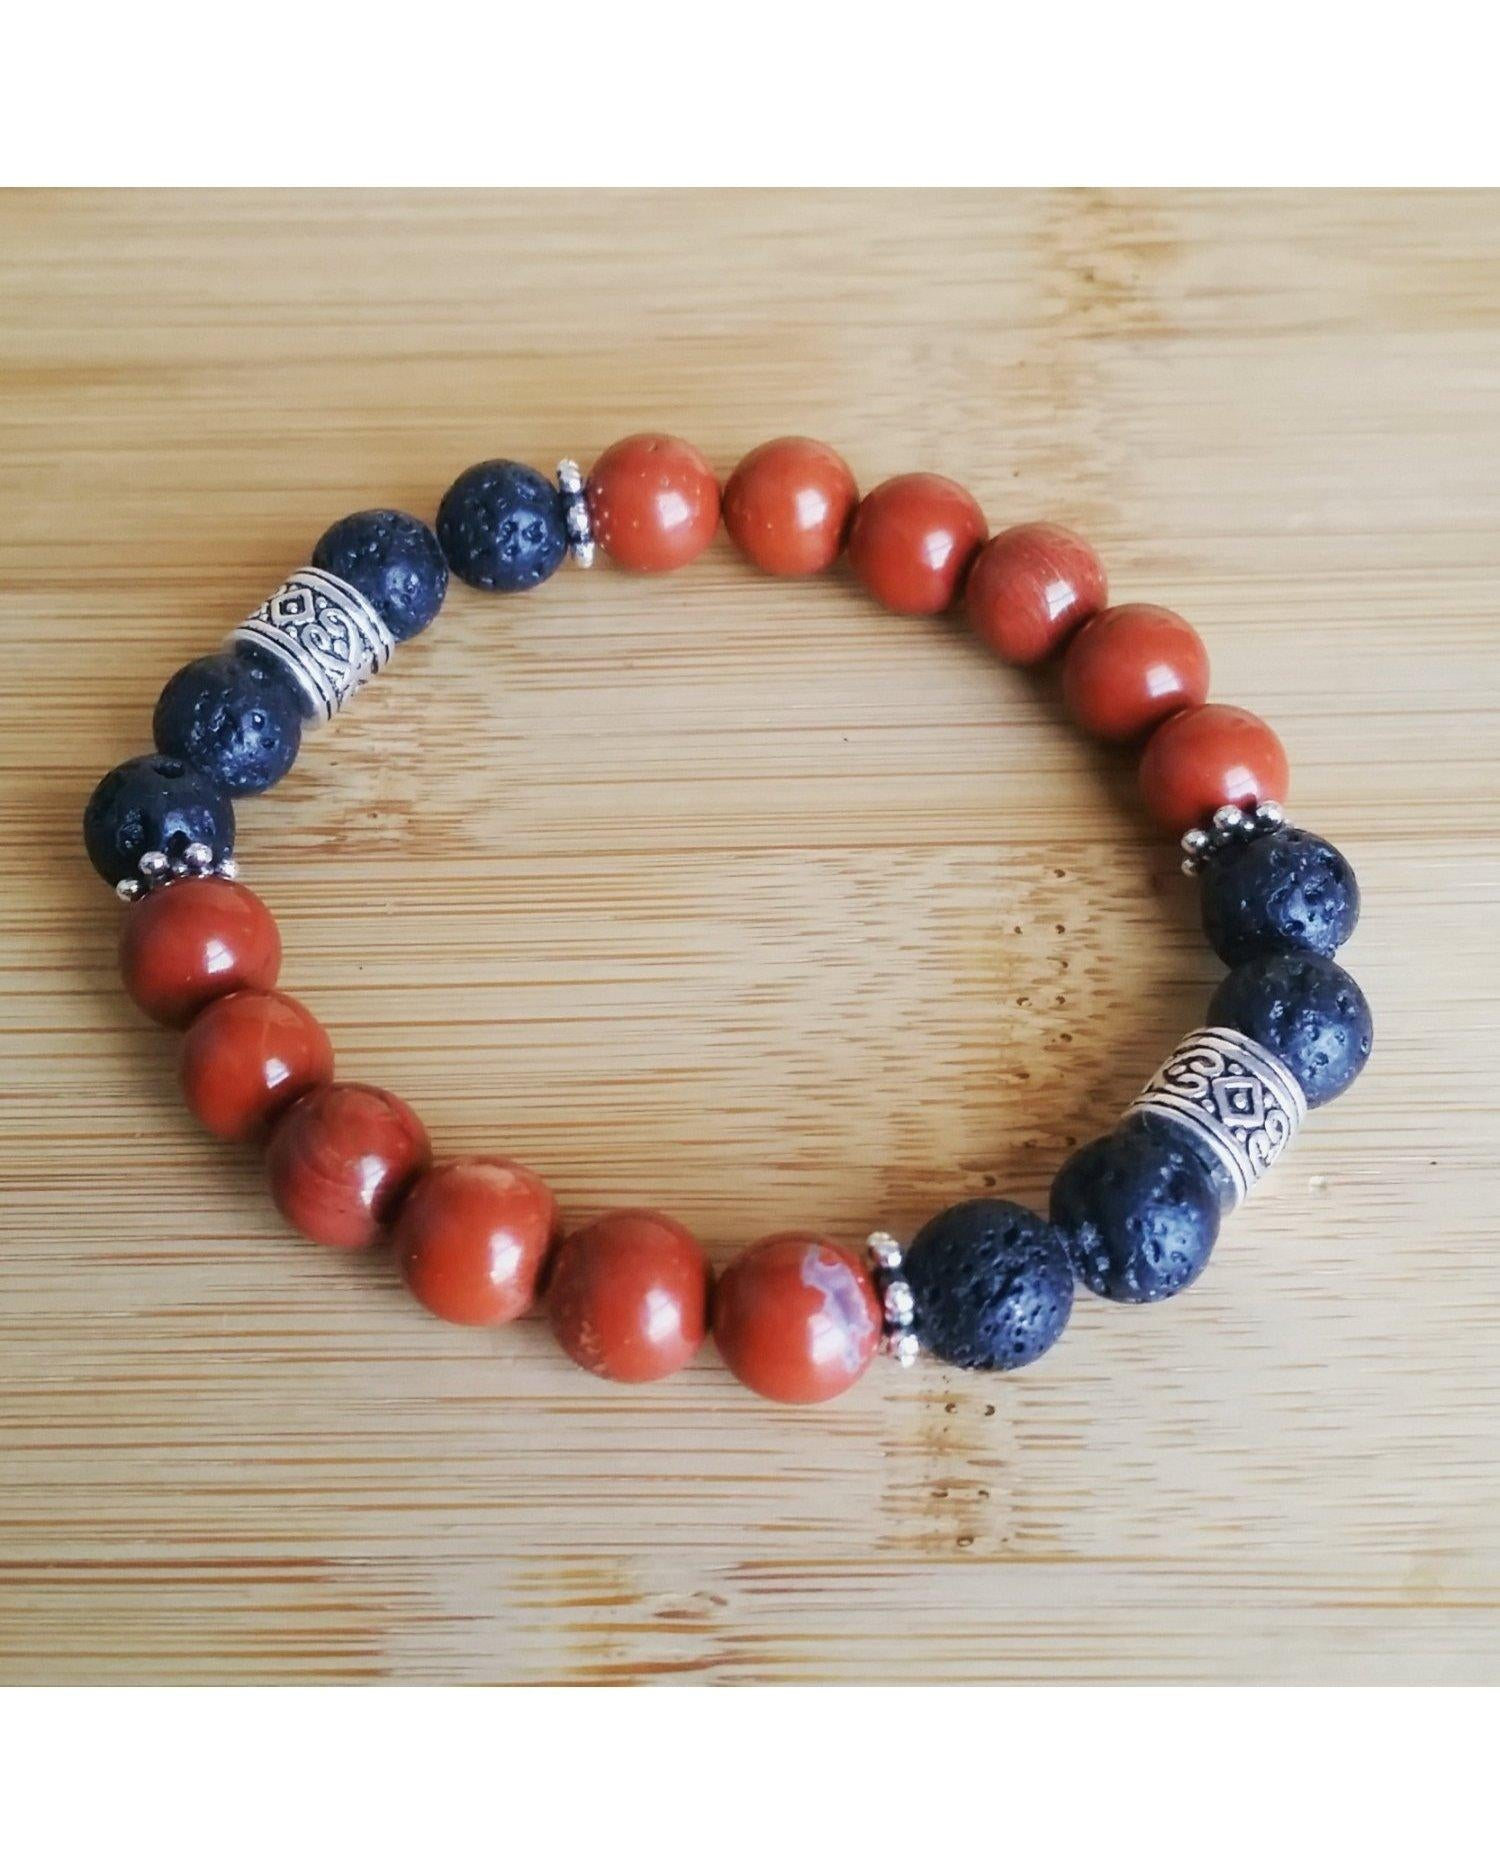 Terra Cotta Red Jasper Semi-Precious Gemstone and Lava Rock 8mm Bead Essential Oil Diffuser Stretch Bracelet P050 - Essentially Elegant